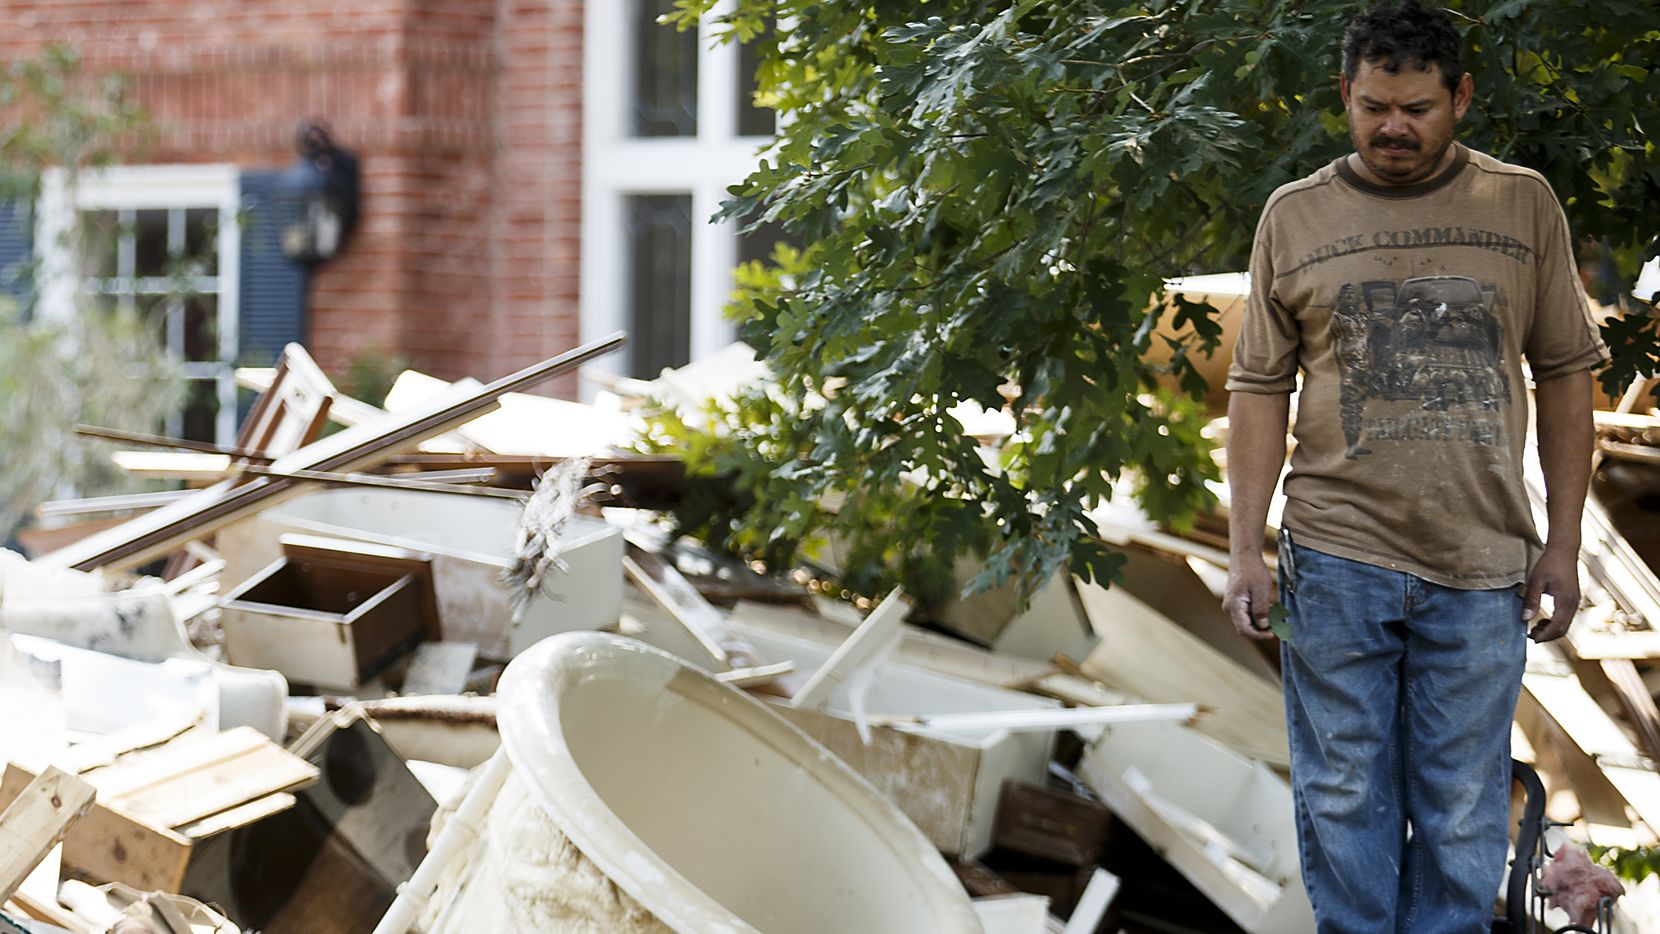 A worker stands amidst a pile of rubble in front of a house damaged by flooding from Hurricane Harvey in Houston.